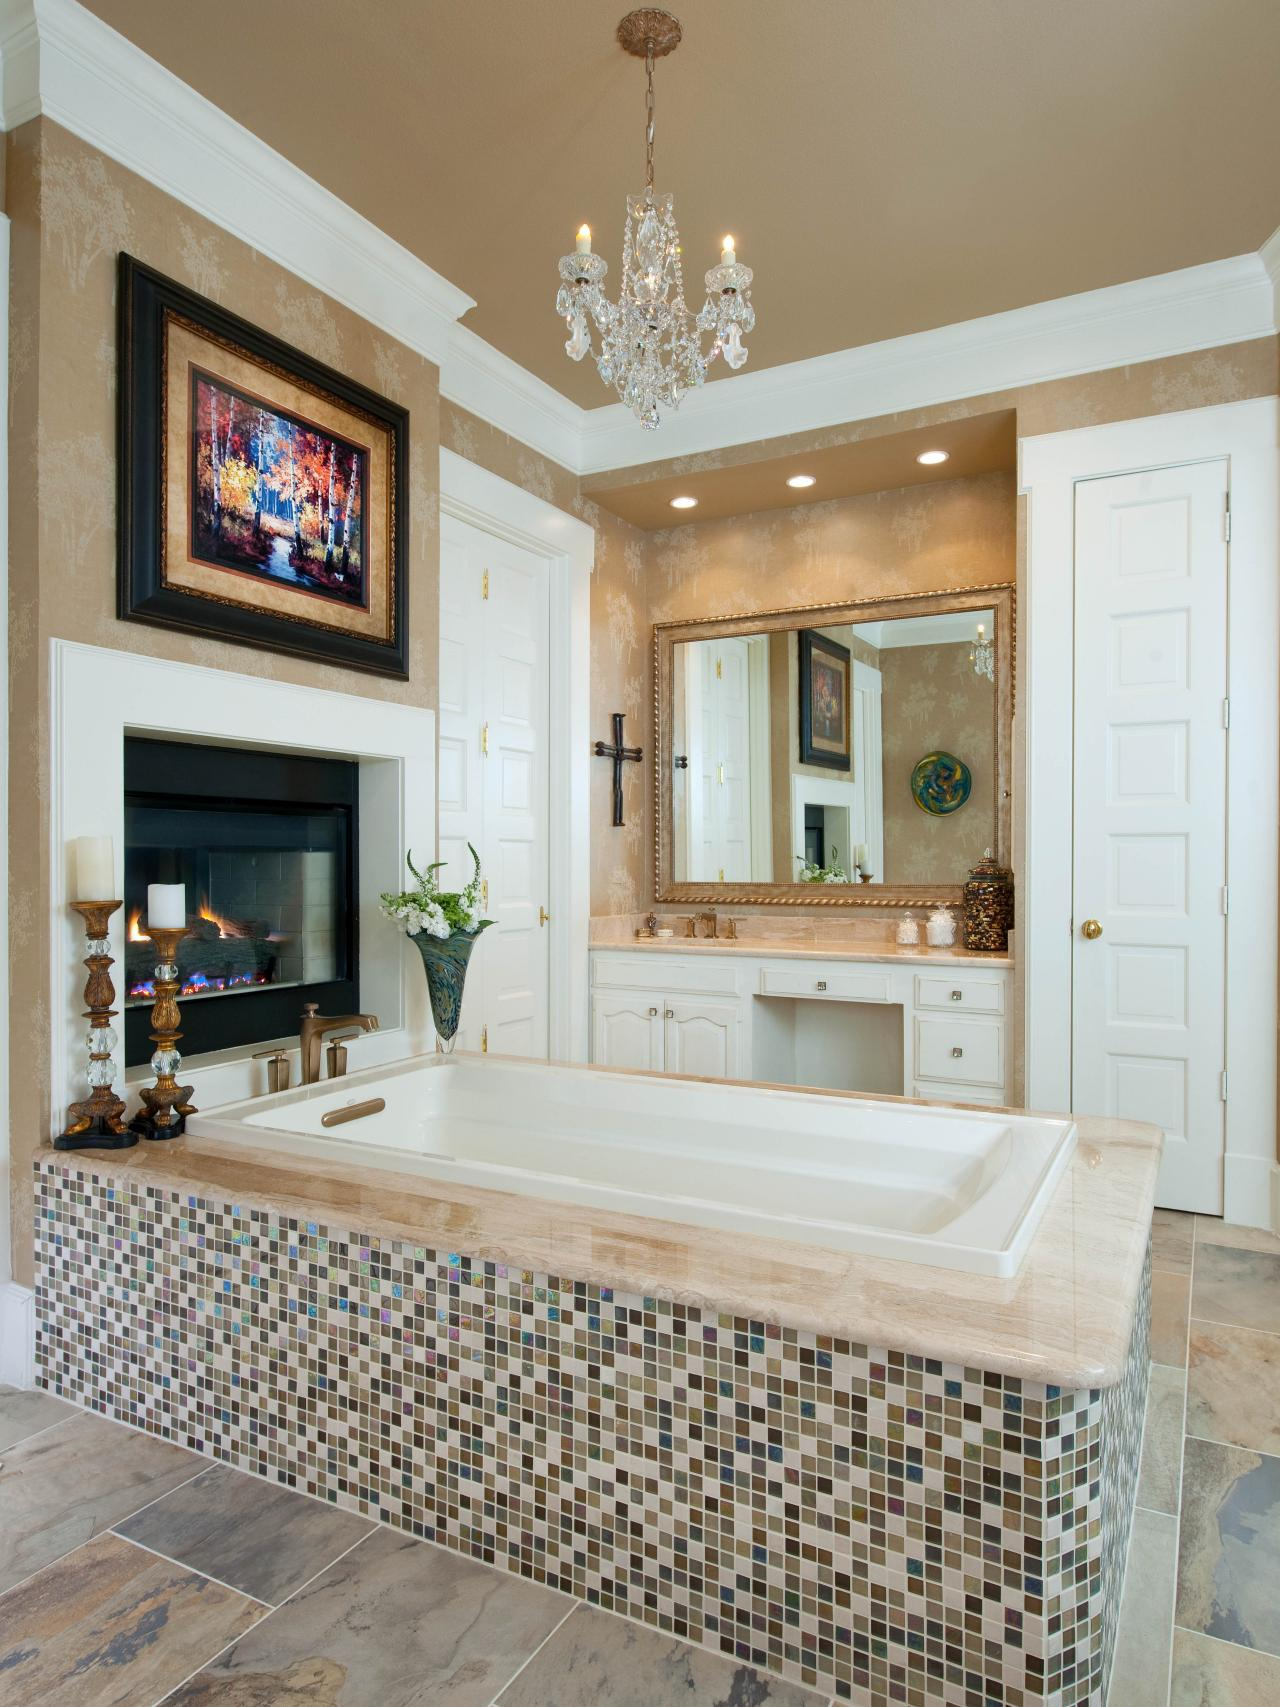 Bathroom Chandelier Lighting Ideas 20 luxurious bathrooms with elegant chandelier lighting